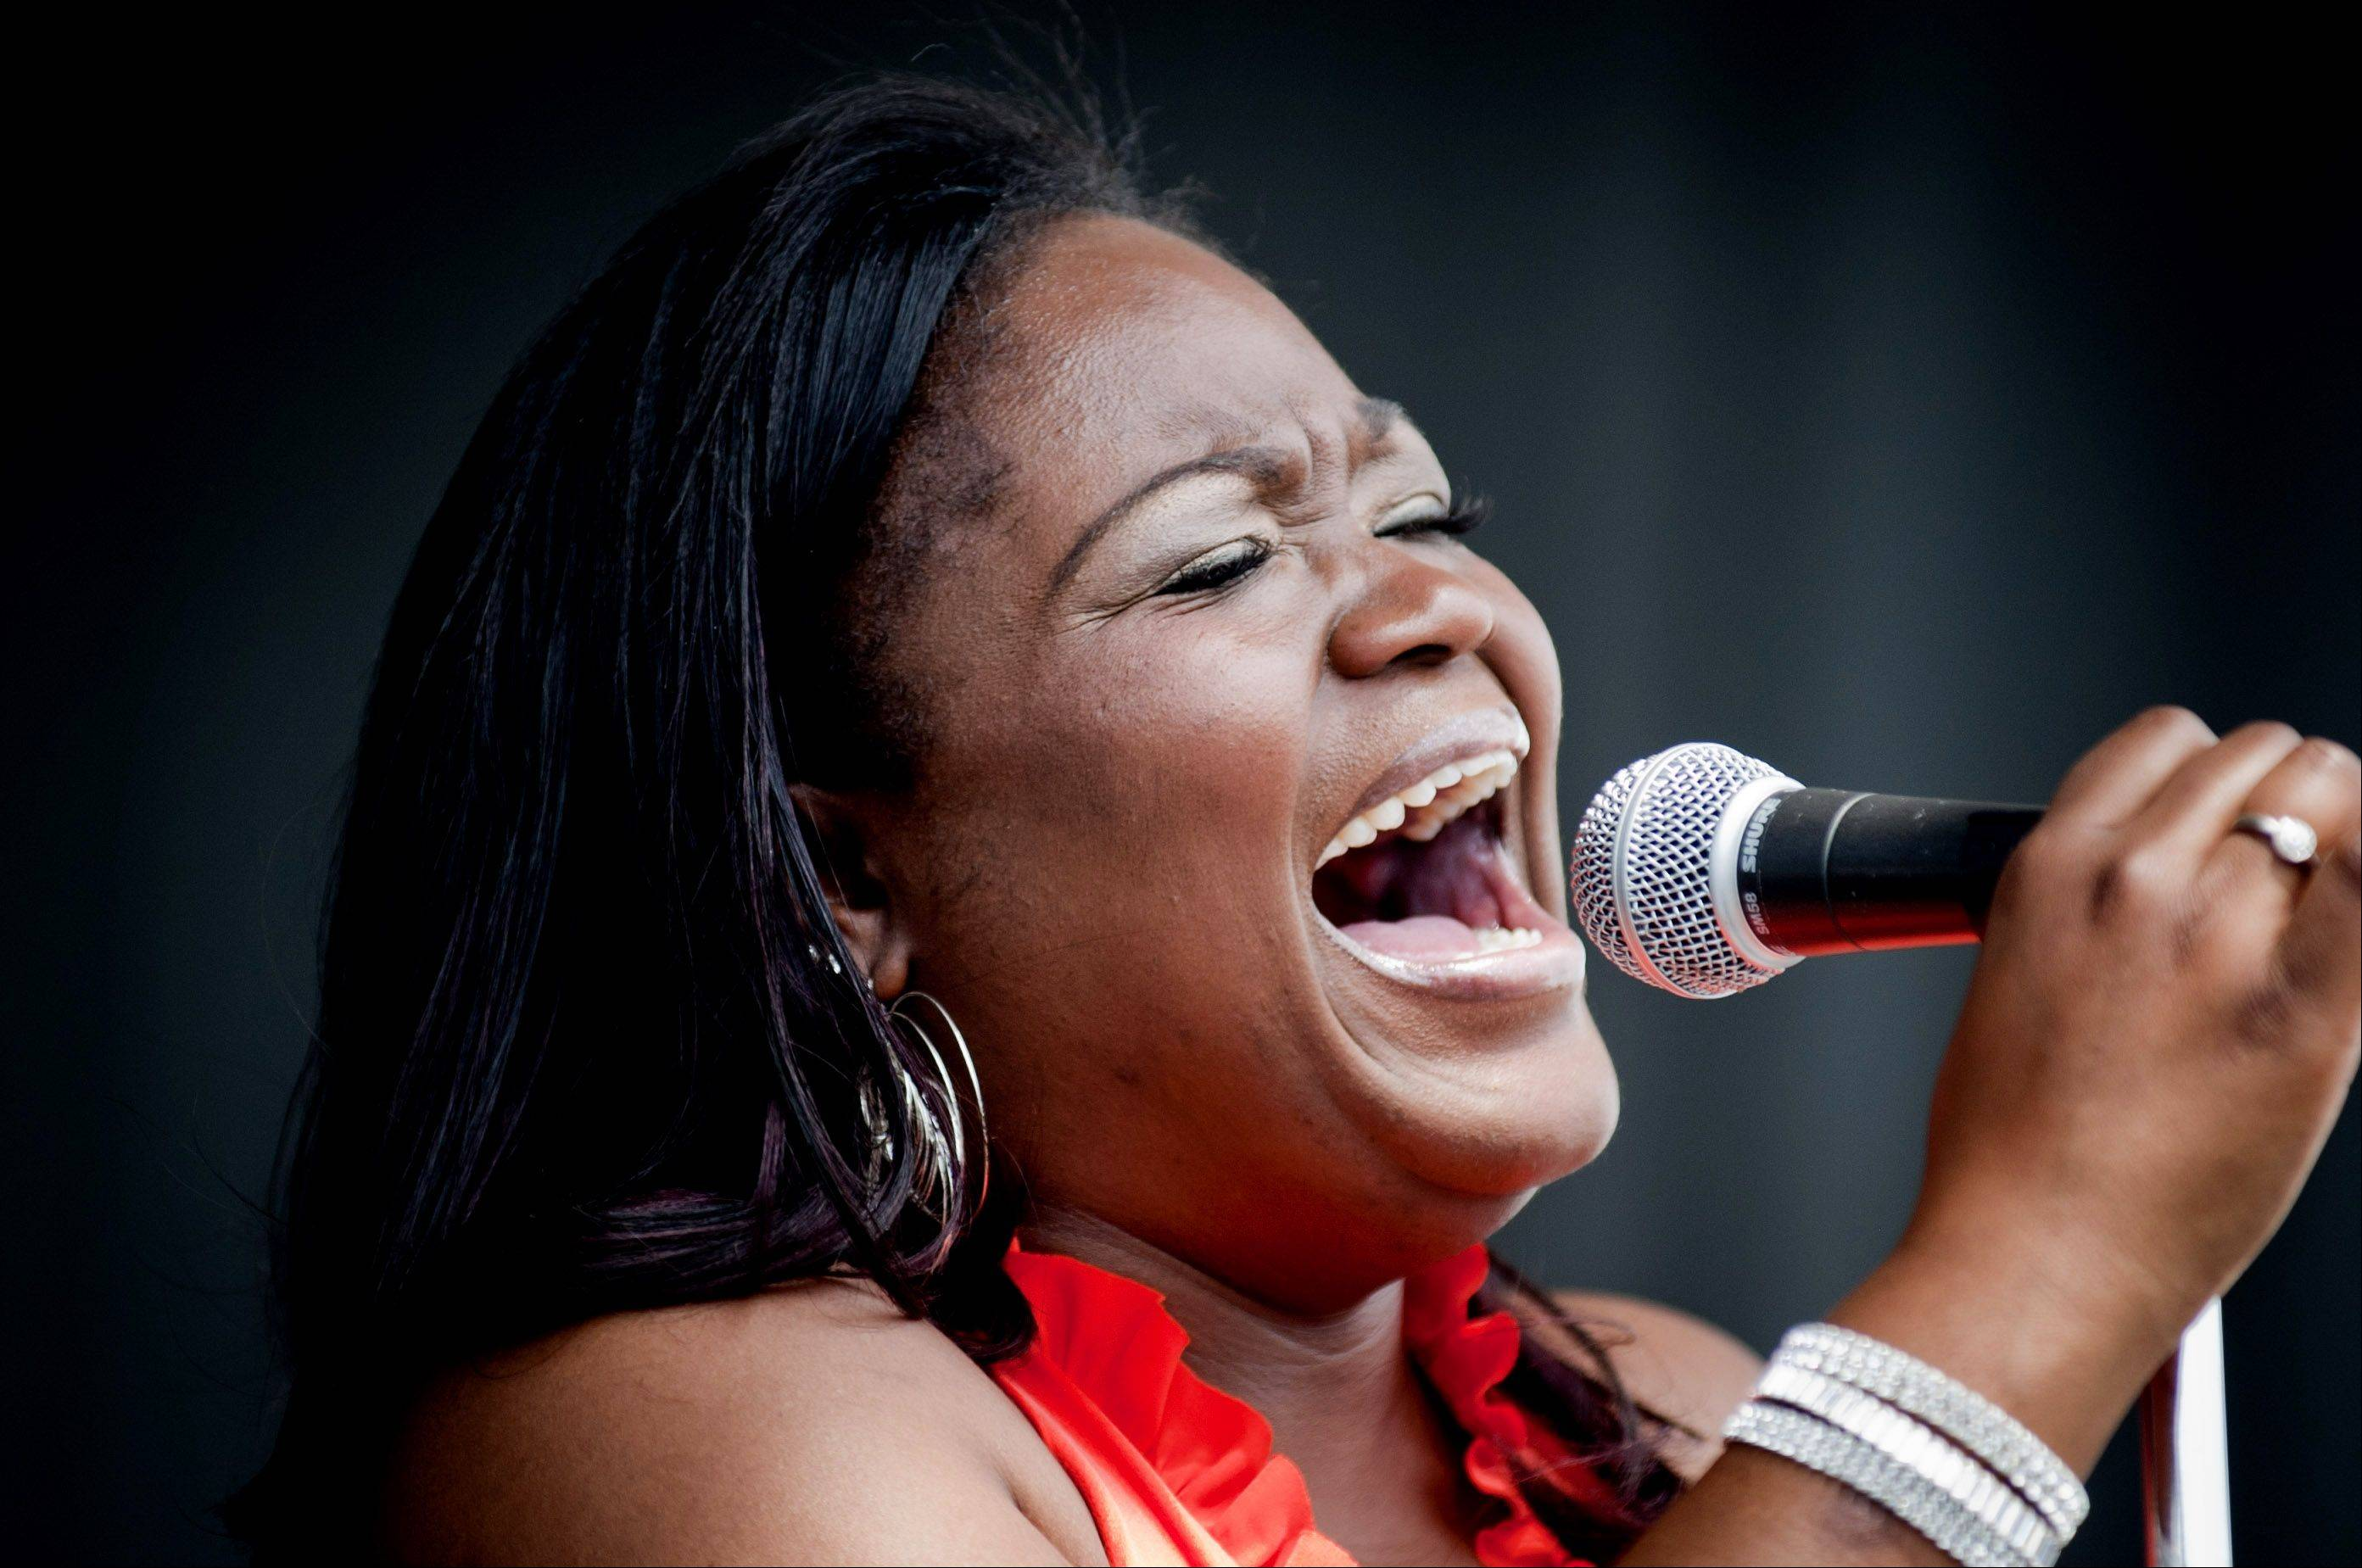 Shemekia Copeland performs on the opening night of the 2013 Chicago Blues Festival at Millennium Park's Pritzker Pavilion on Thursday, June 6.